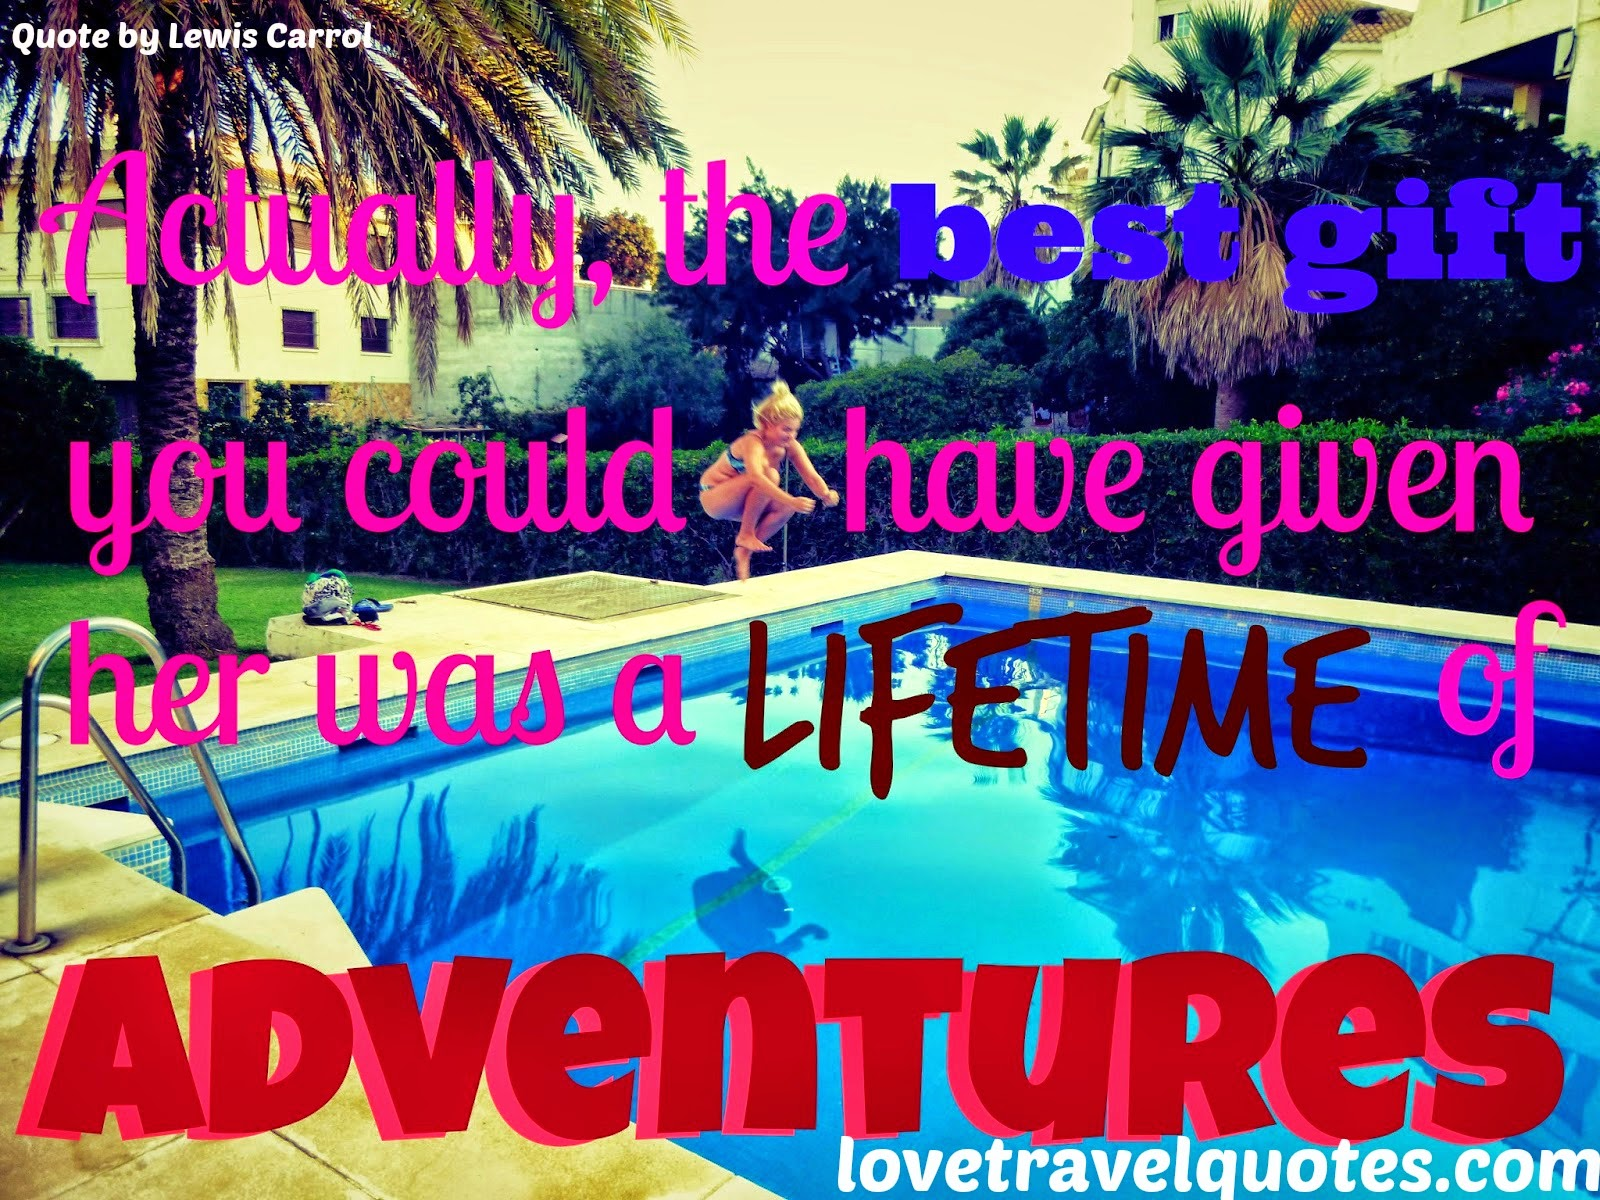 the best thing you could have given her was a lifetime of adventures